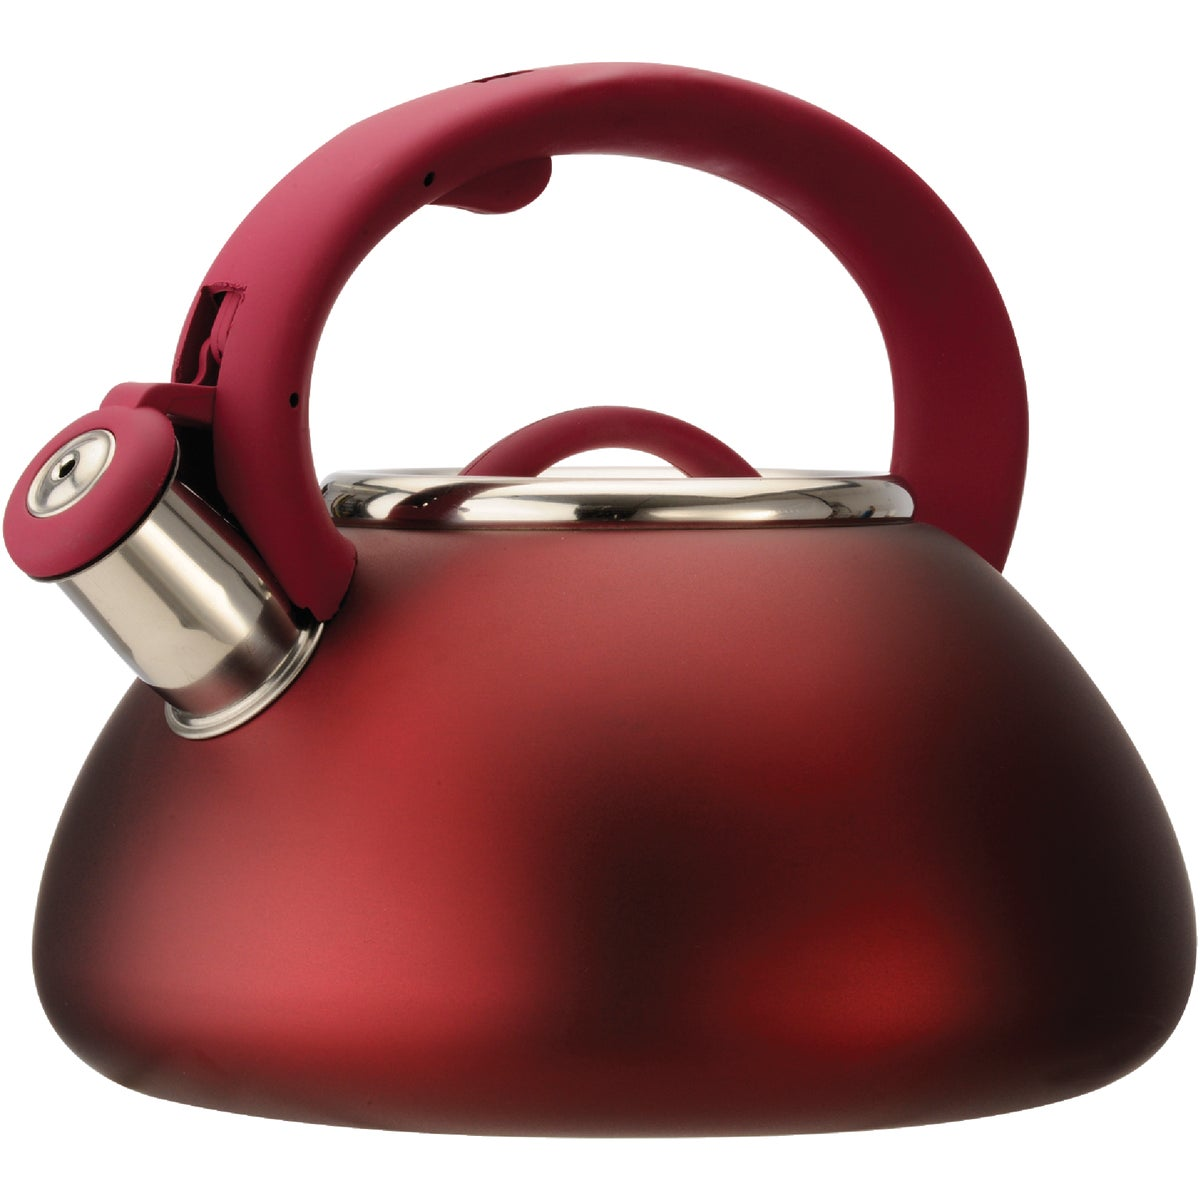 AVALON 2.5 QT RED KETTLE - PAVRE-6225 by Epoca Inc